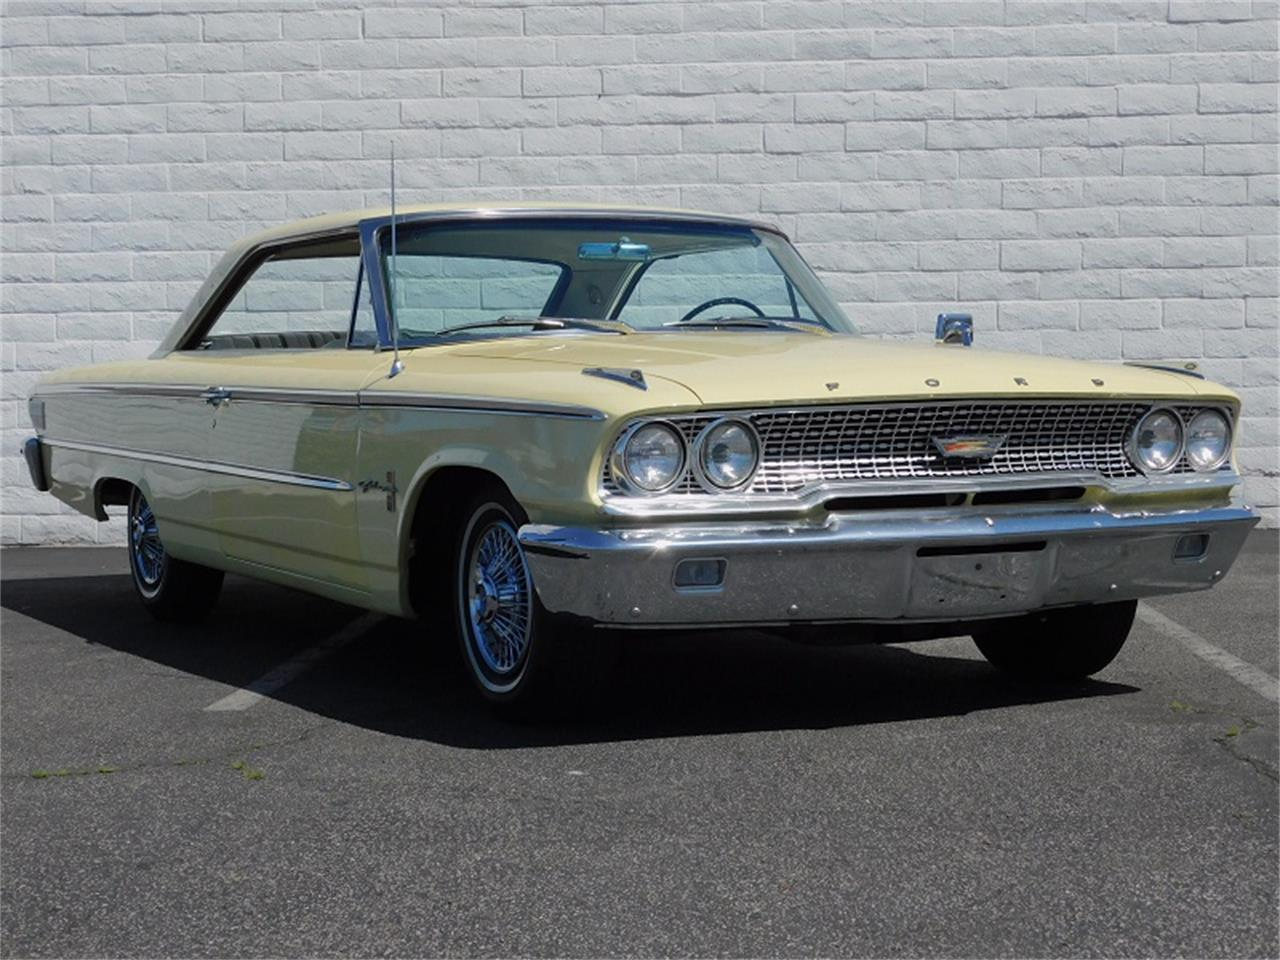 Large picture of 63 galaxie 500 xl n5n1